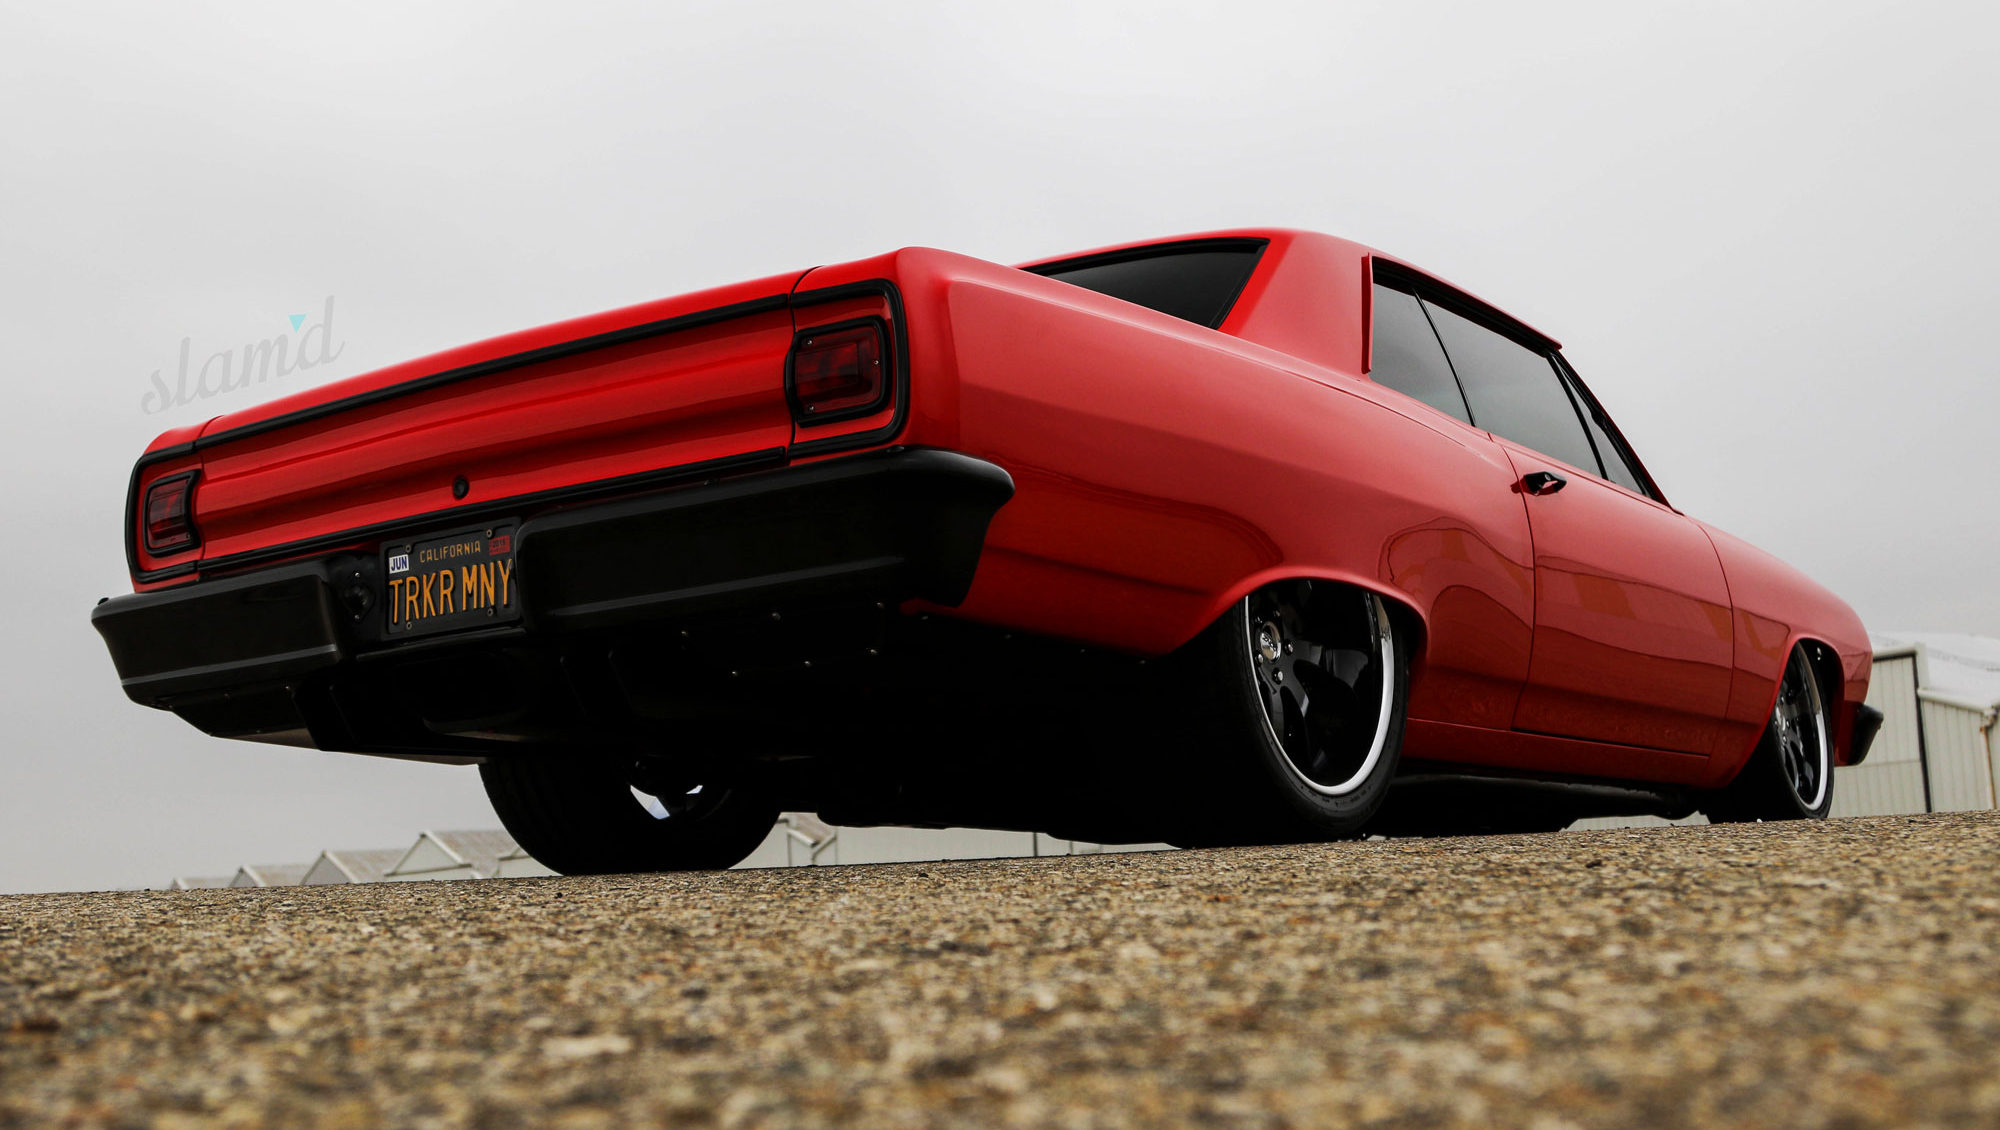 Lady In Red: John's Boggio's Seductive 1965 Chevelle – Slam'd Mag